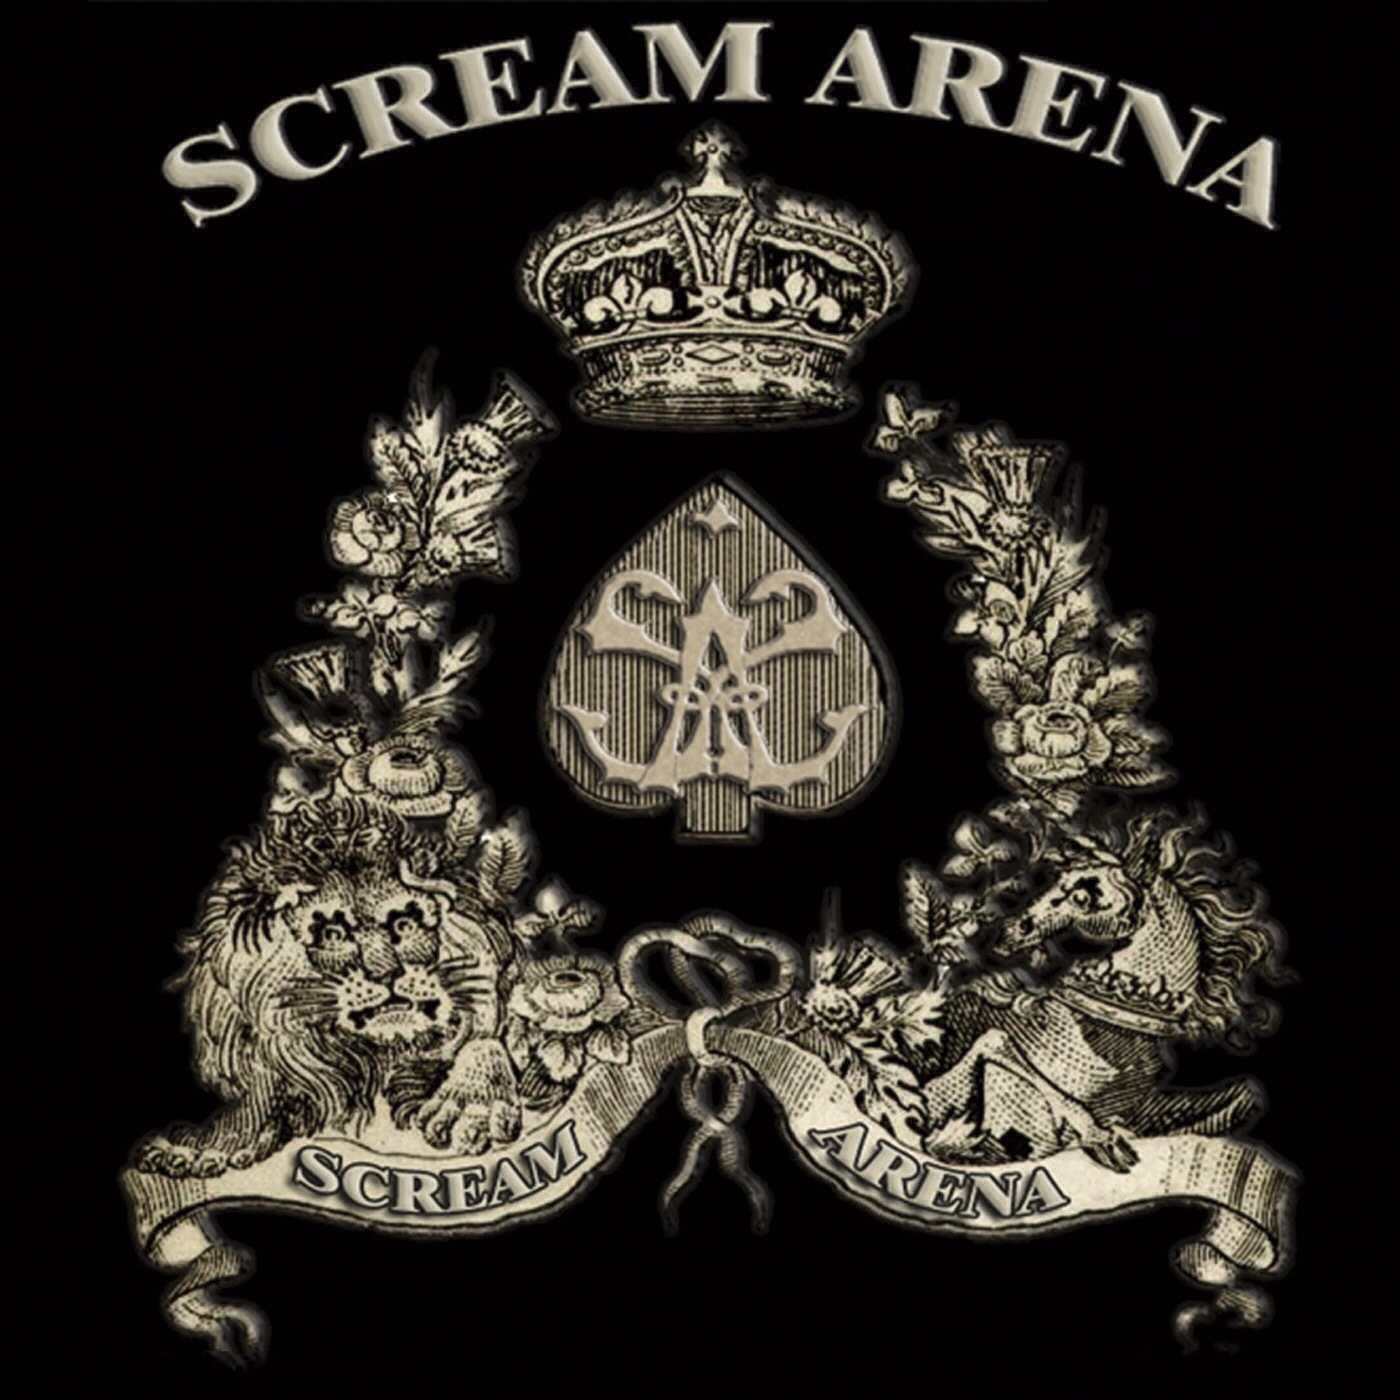 Scream Arena – Scream Arena